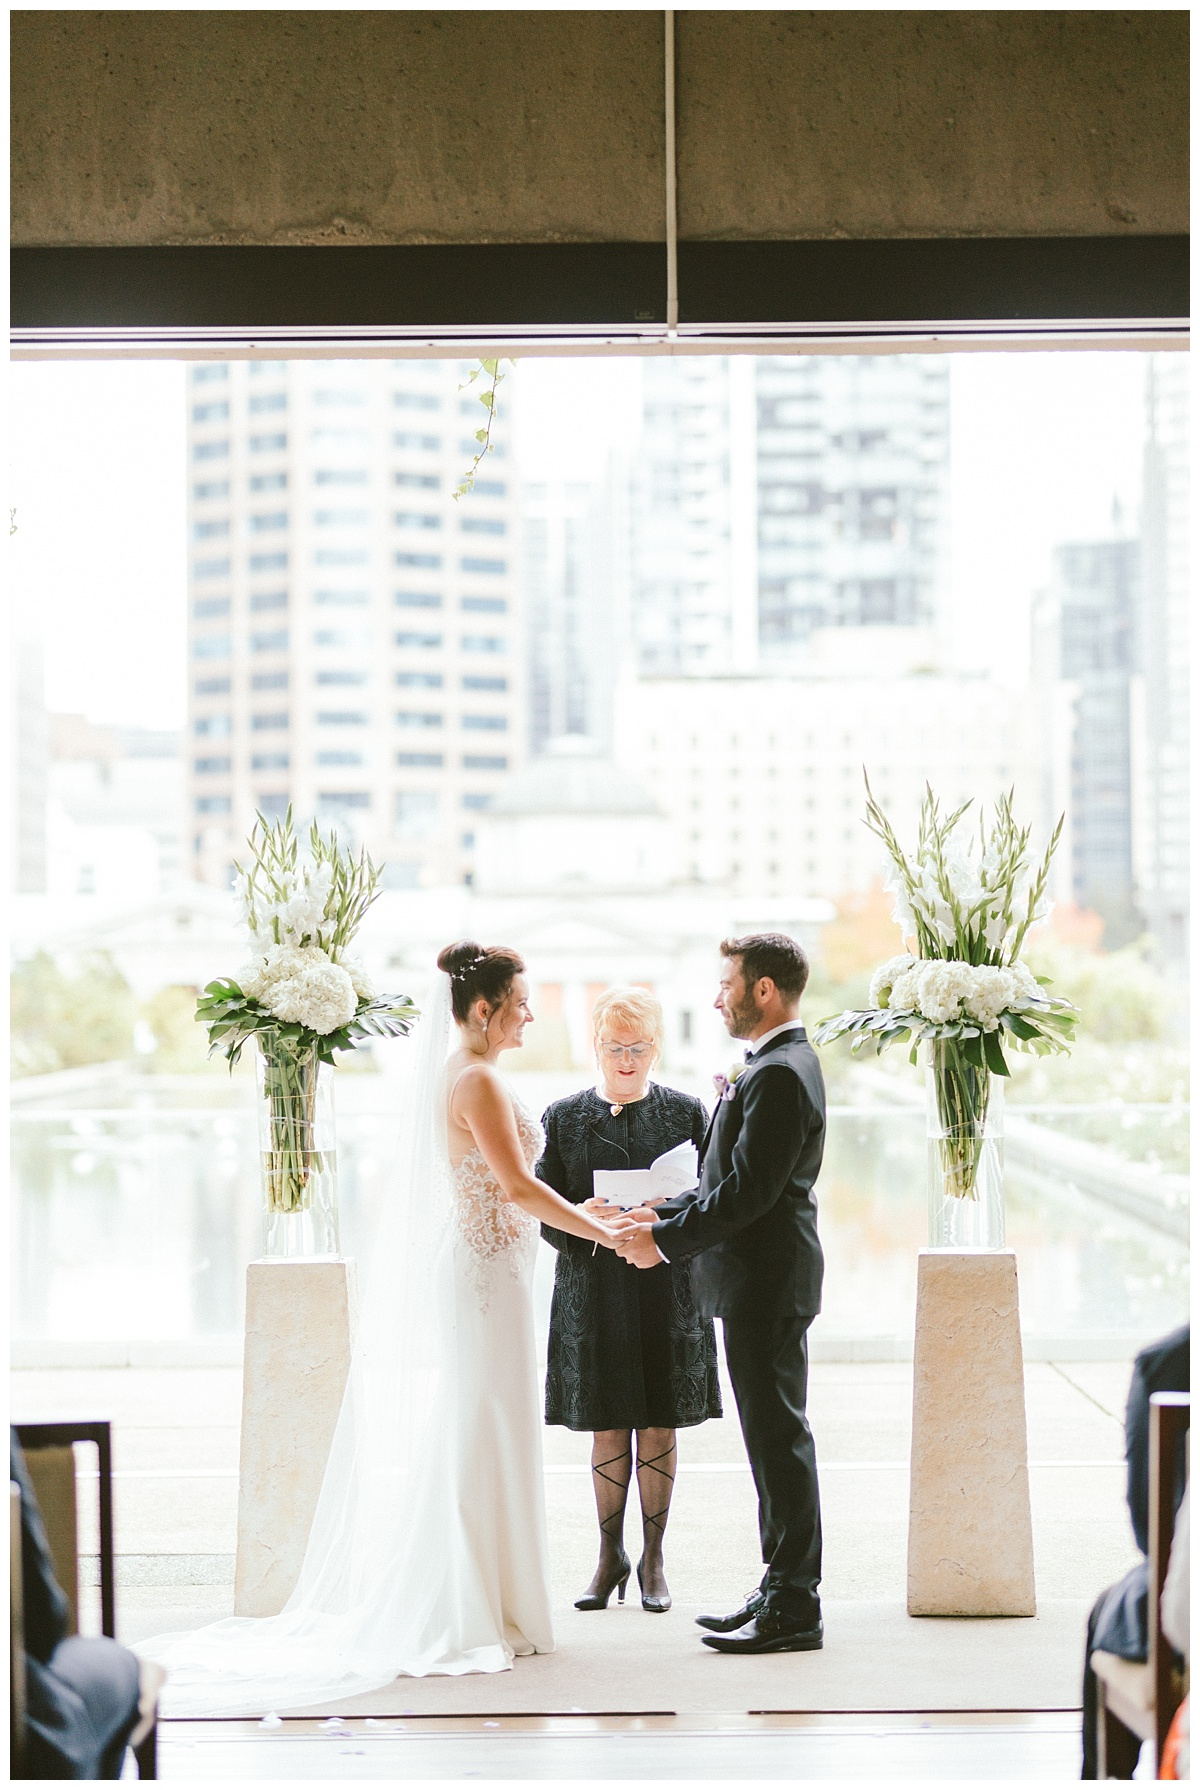 Wedding ceremony at Law Courts Inn, Vancouver